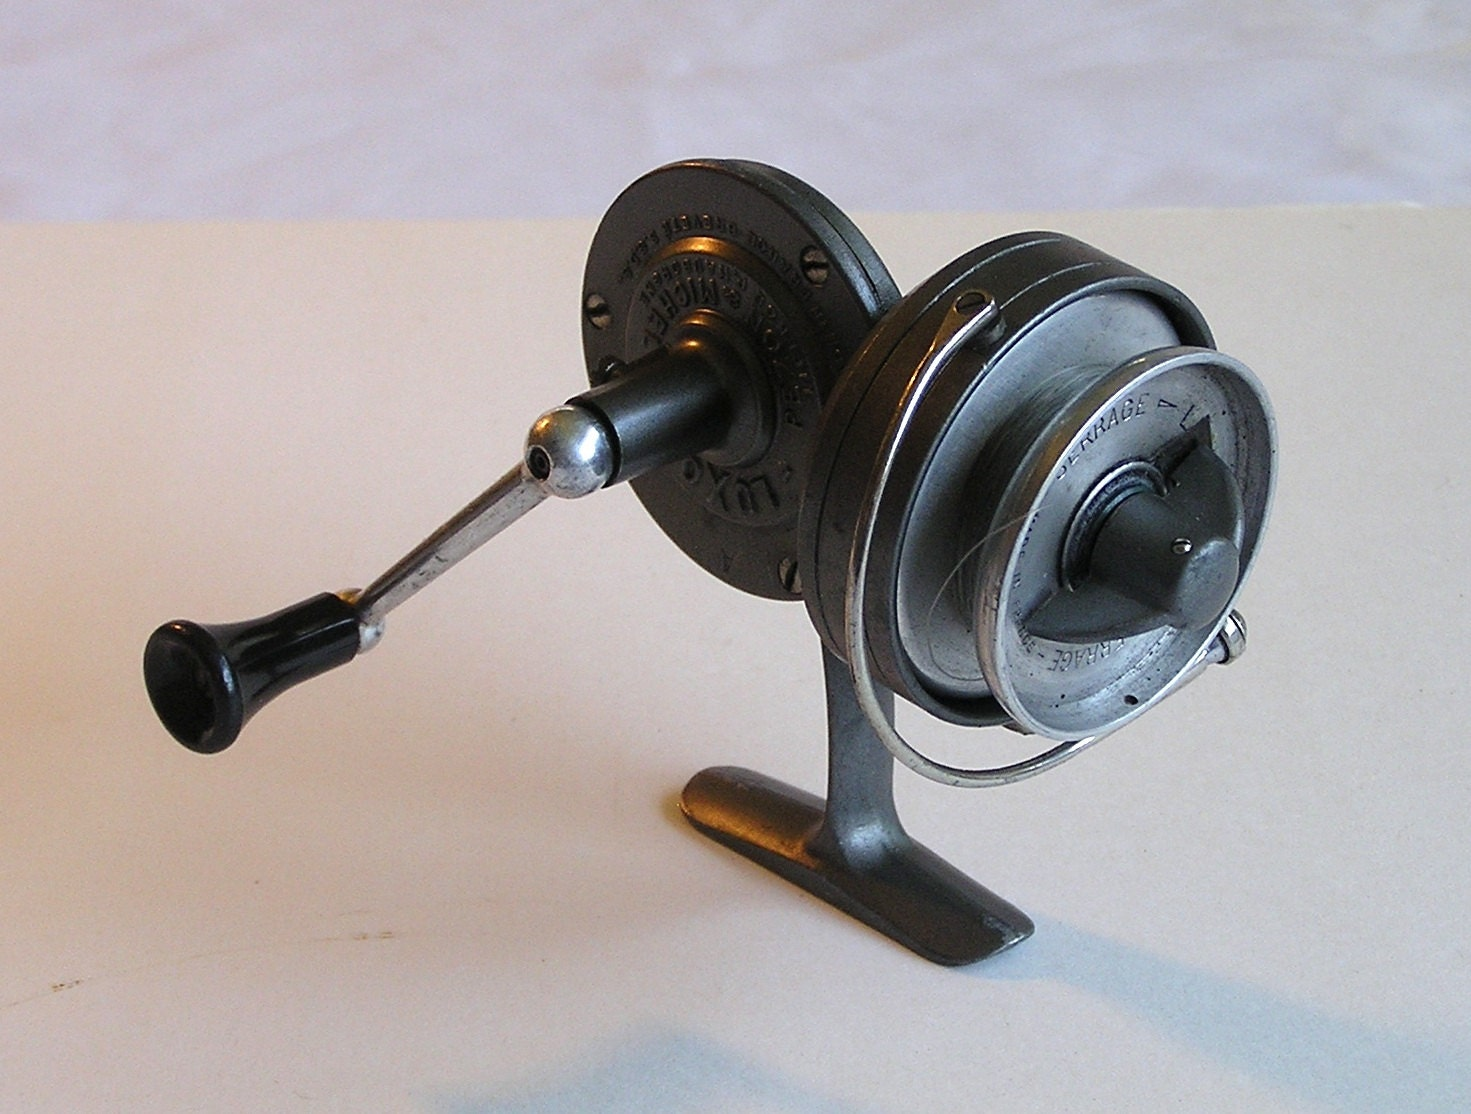 Vintage luxor mer pezon et michel fishing reel by for Vintage fishing reels